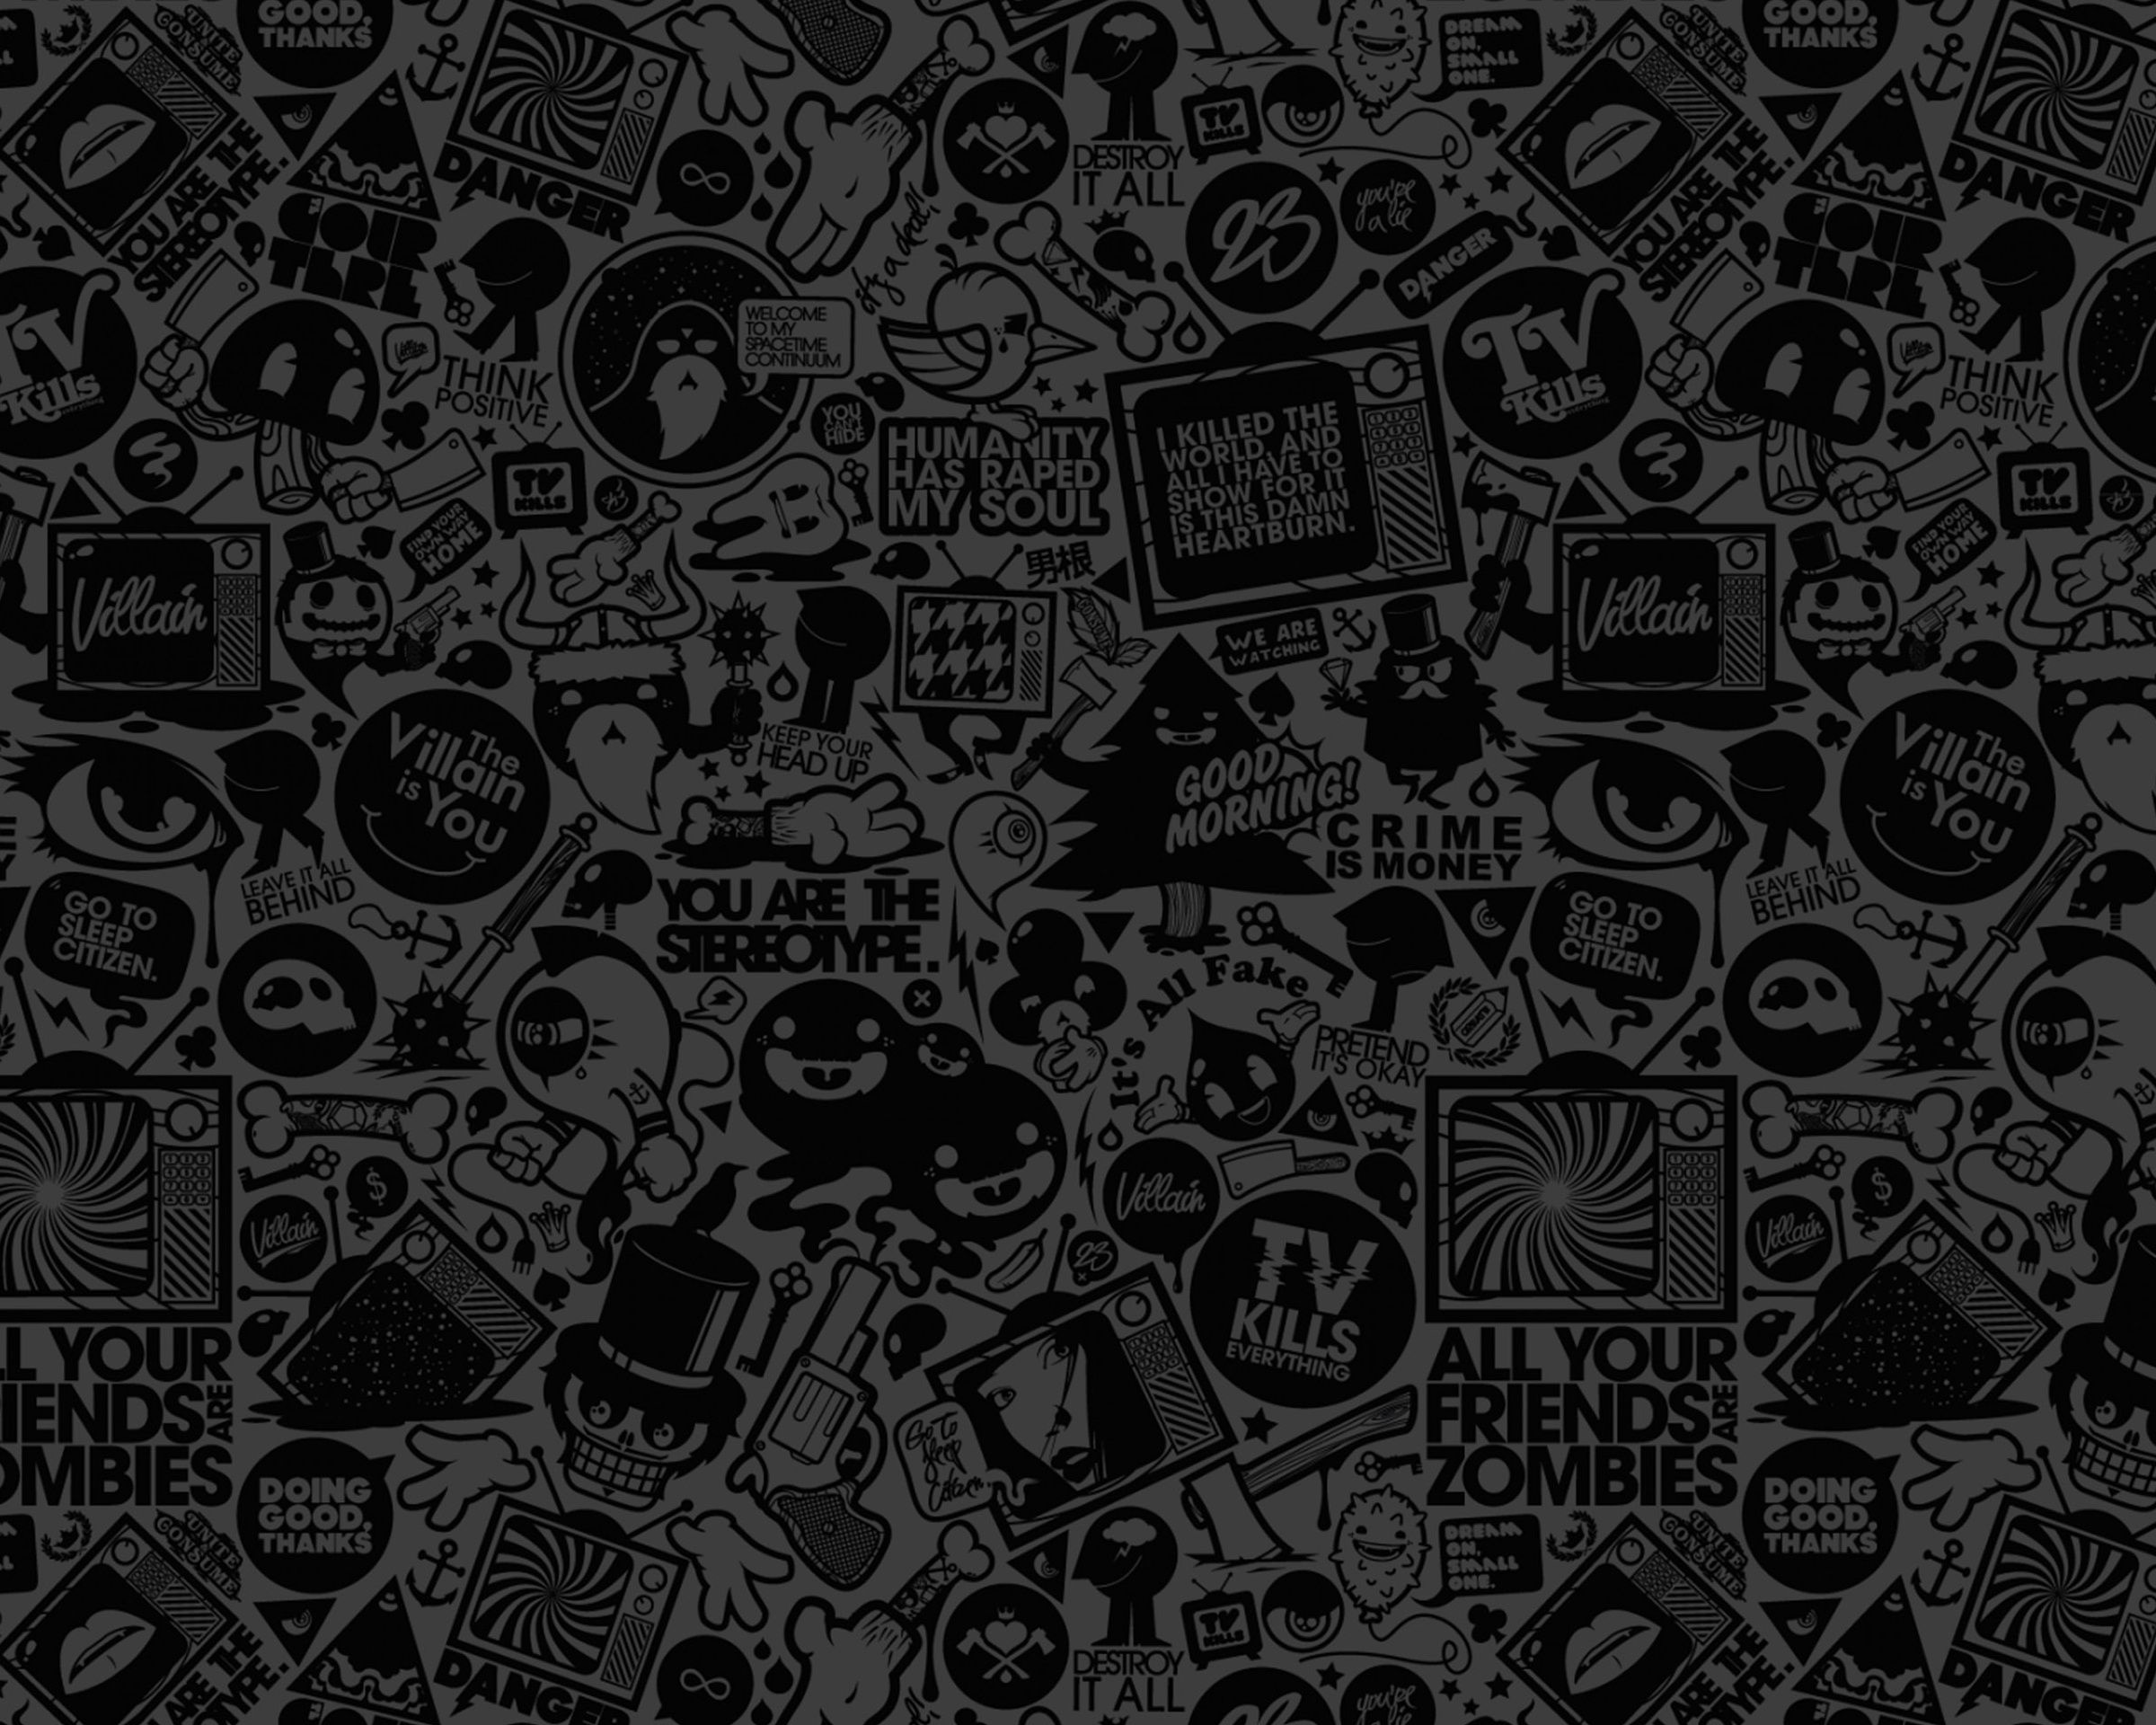 Art Black Pattern Background Android Wallpaper Mobile9 Mac Wallpaper Doodle Art Cool Wallpapers For Mac